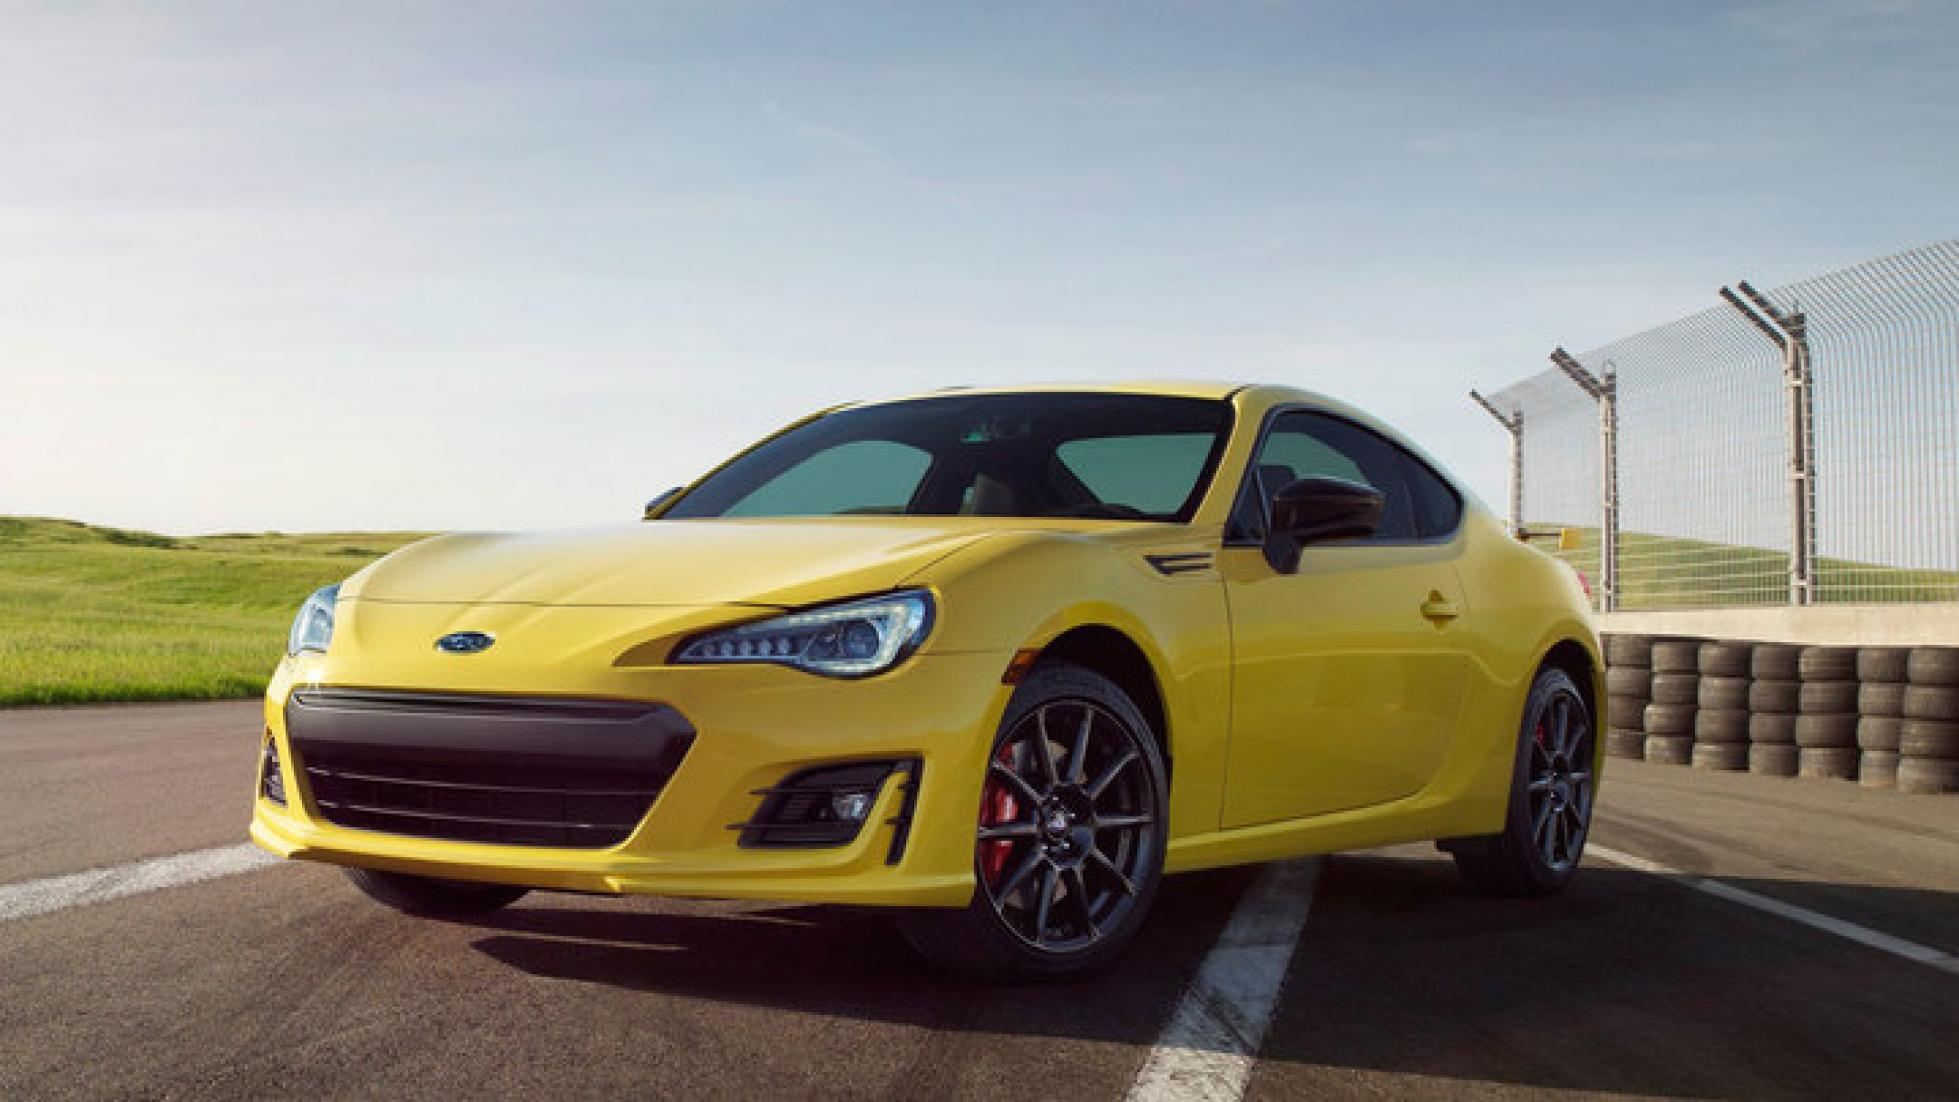 Subaru BRZ ZSeries Yellow 2017